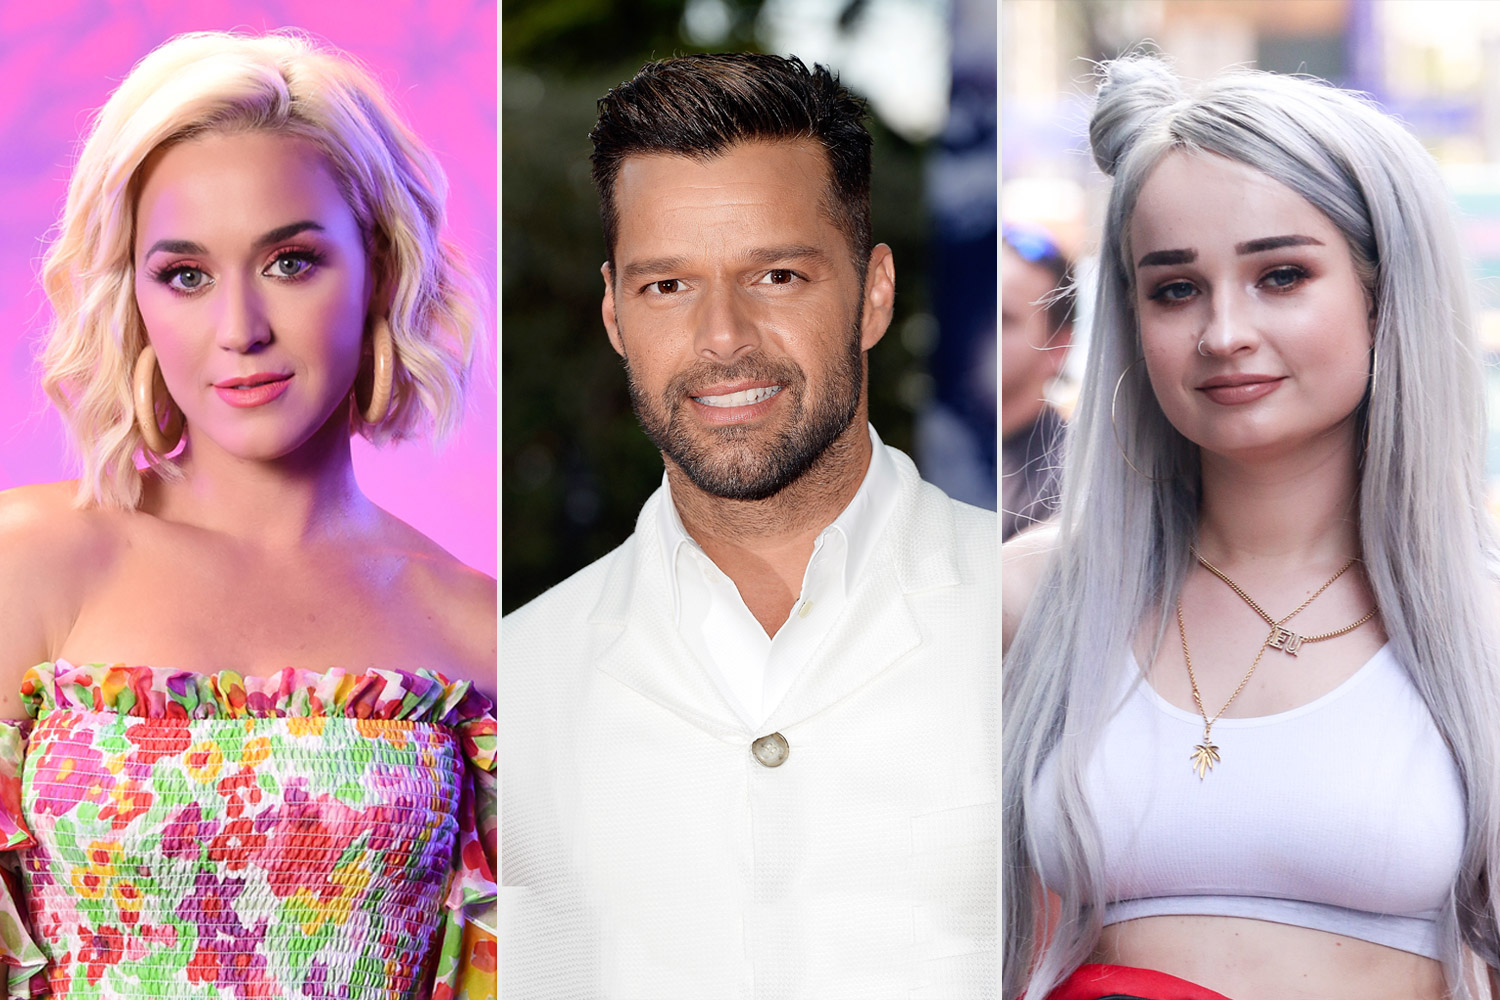 Katy Perry, Kim Petras, and Ricky Martin